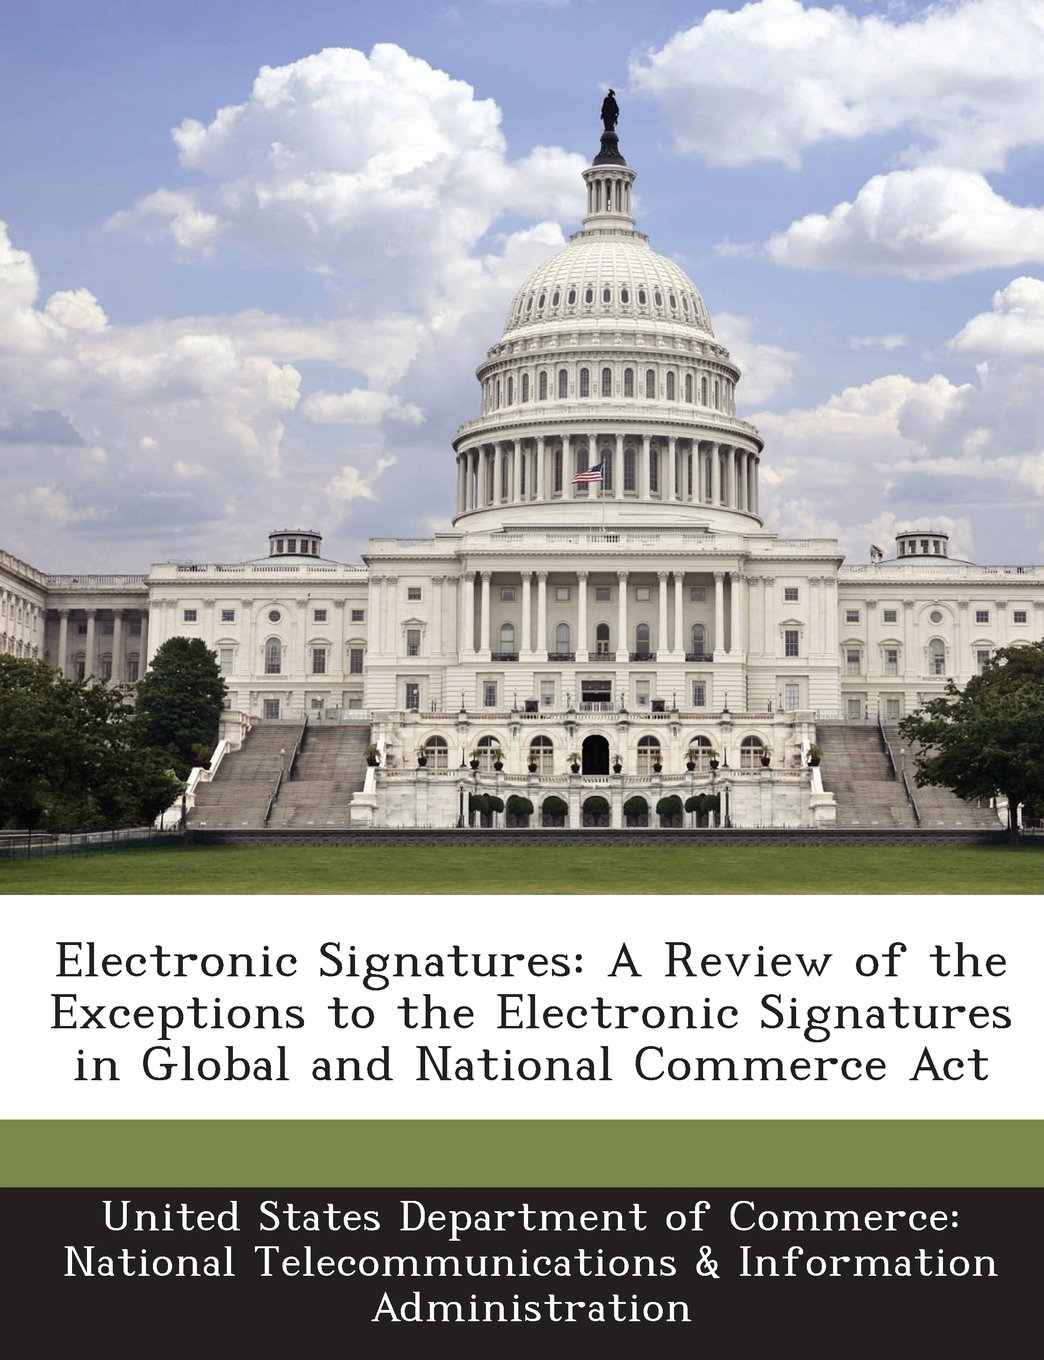 Electronic Signatures: A Review of the Exceptions to the Electronic Signatures in Global and National Commerce Act ebook